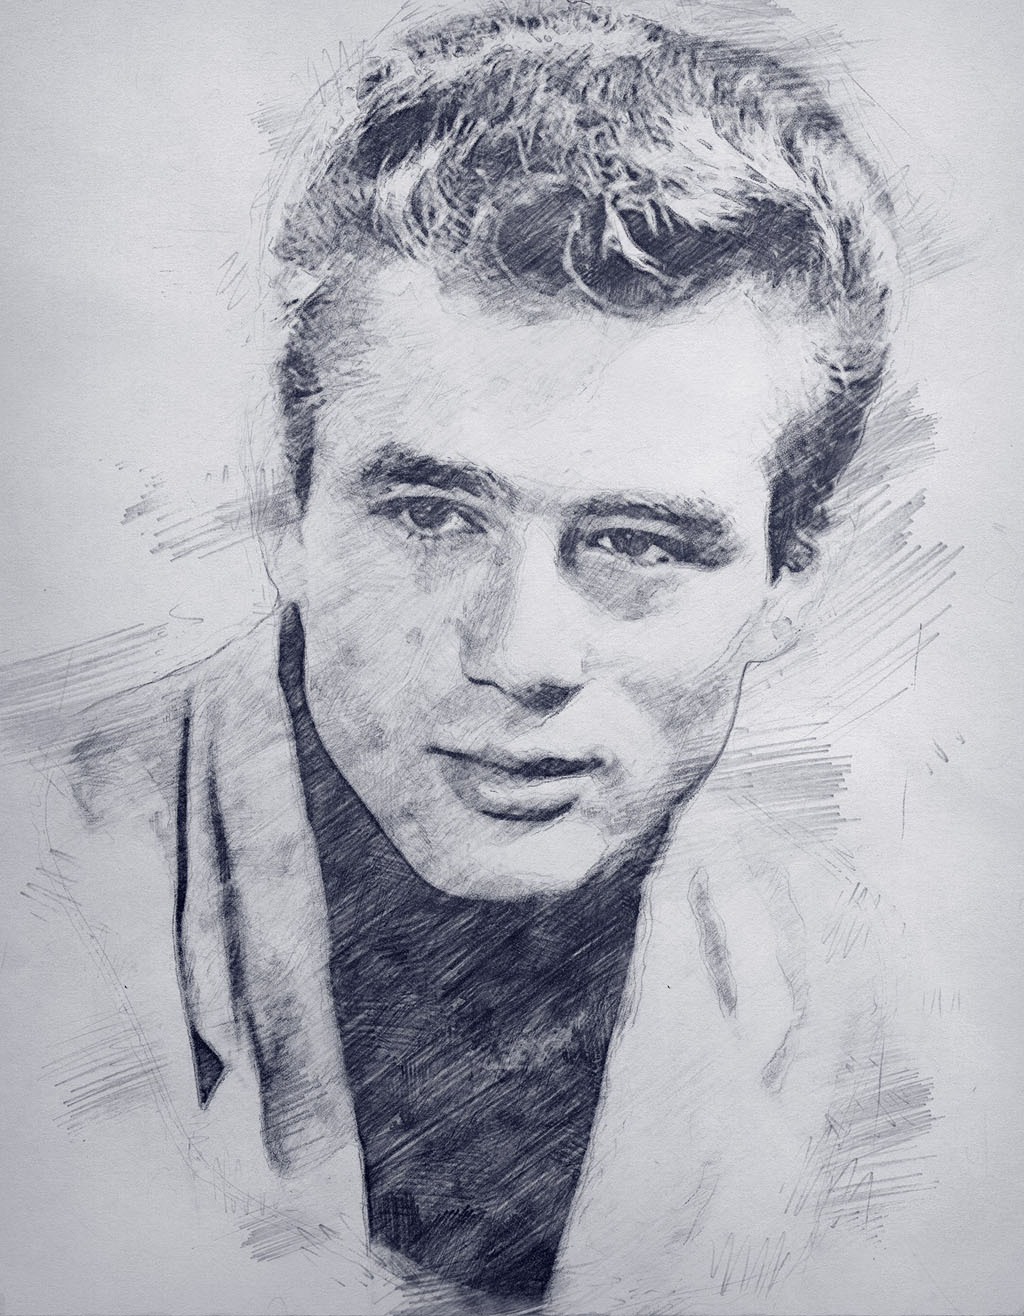 Cimitero dove è sepolto James Dean